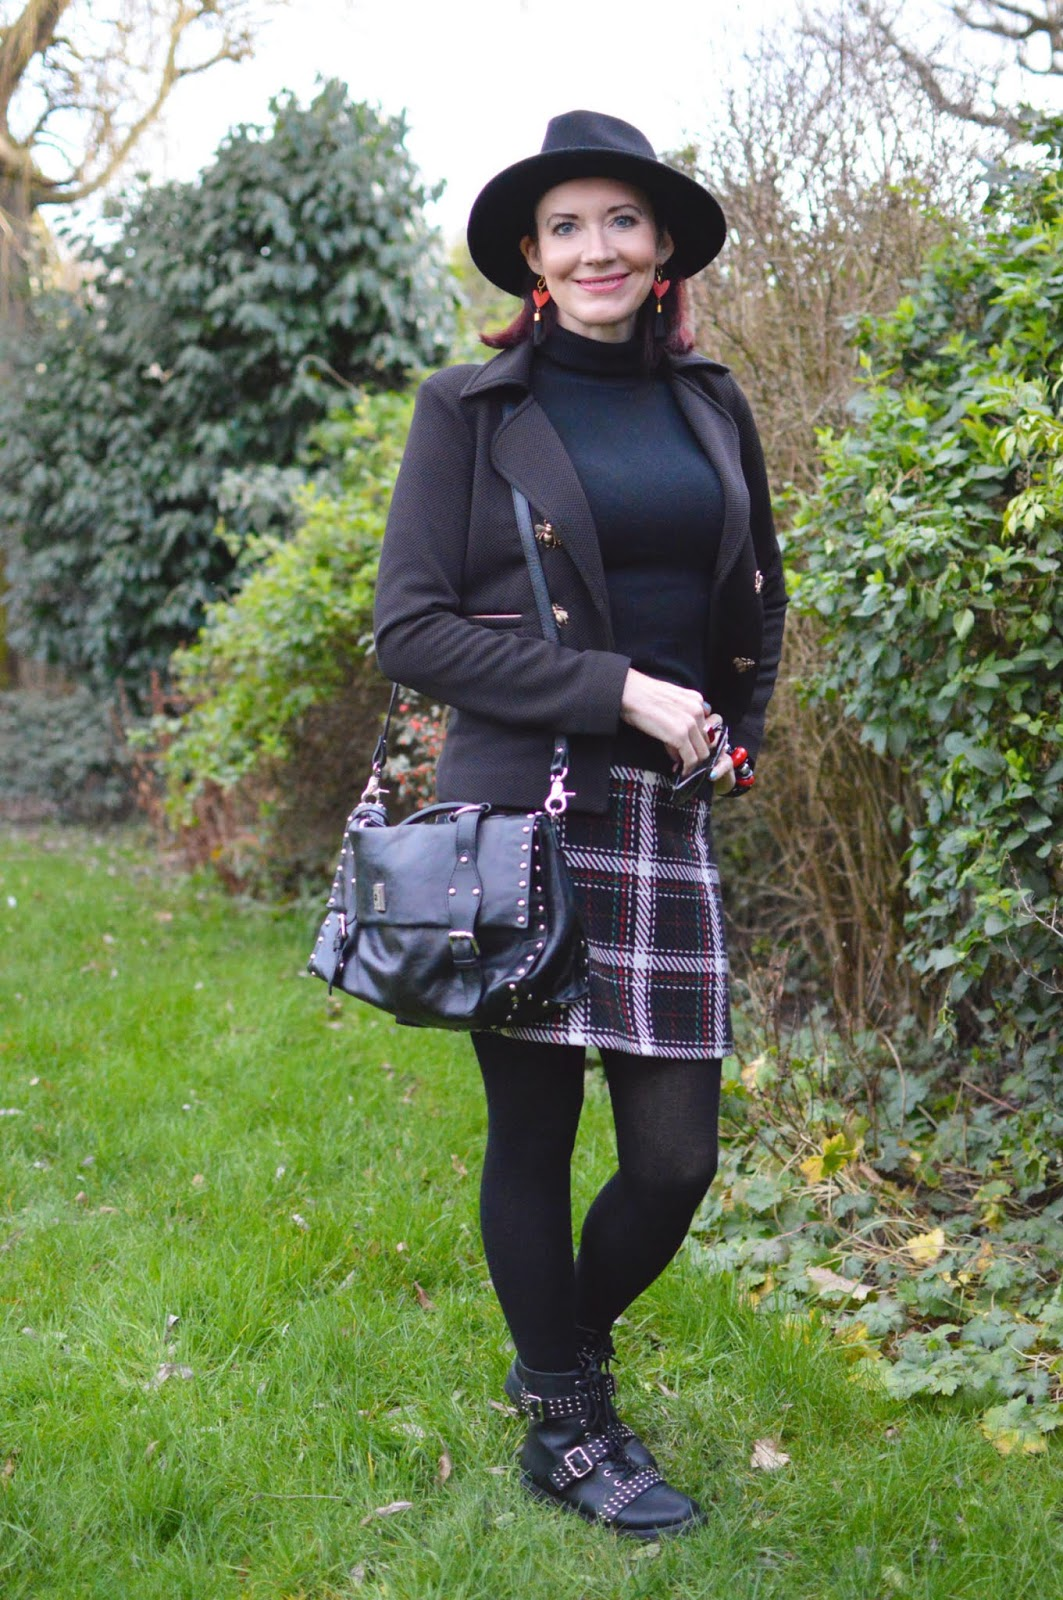 Looking stylish in studded boots, check skirt, hat and amazing bag from Pom Amsterdam is over 40s blogger Emma Peach from Stylesplash